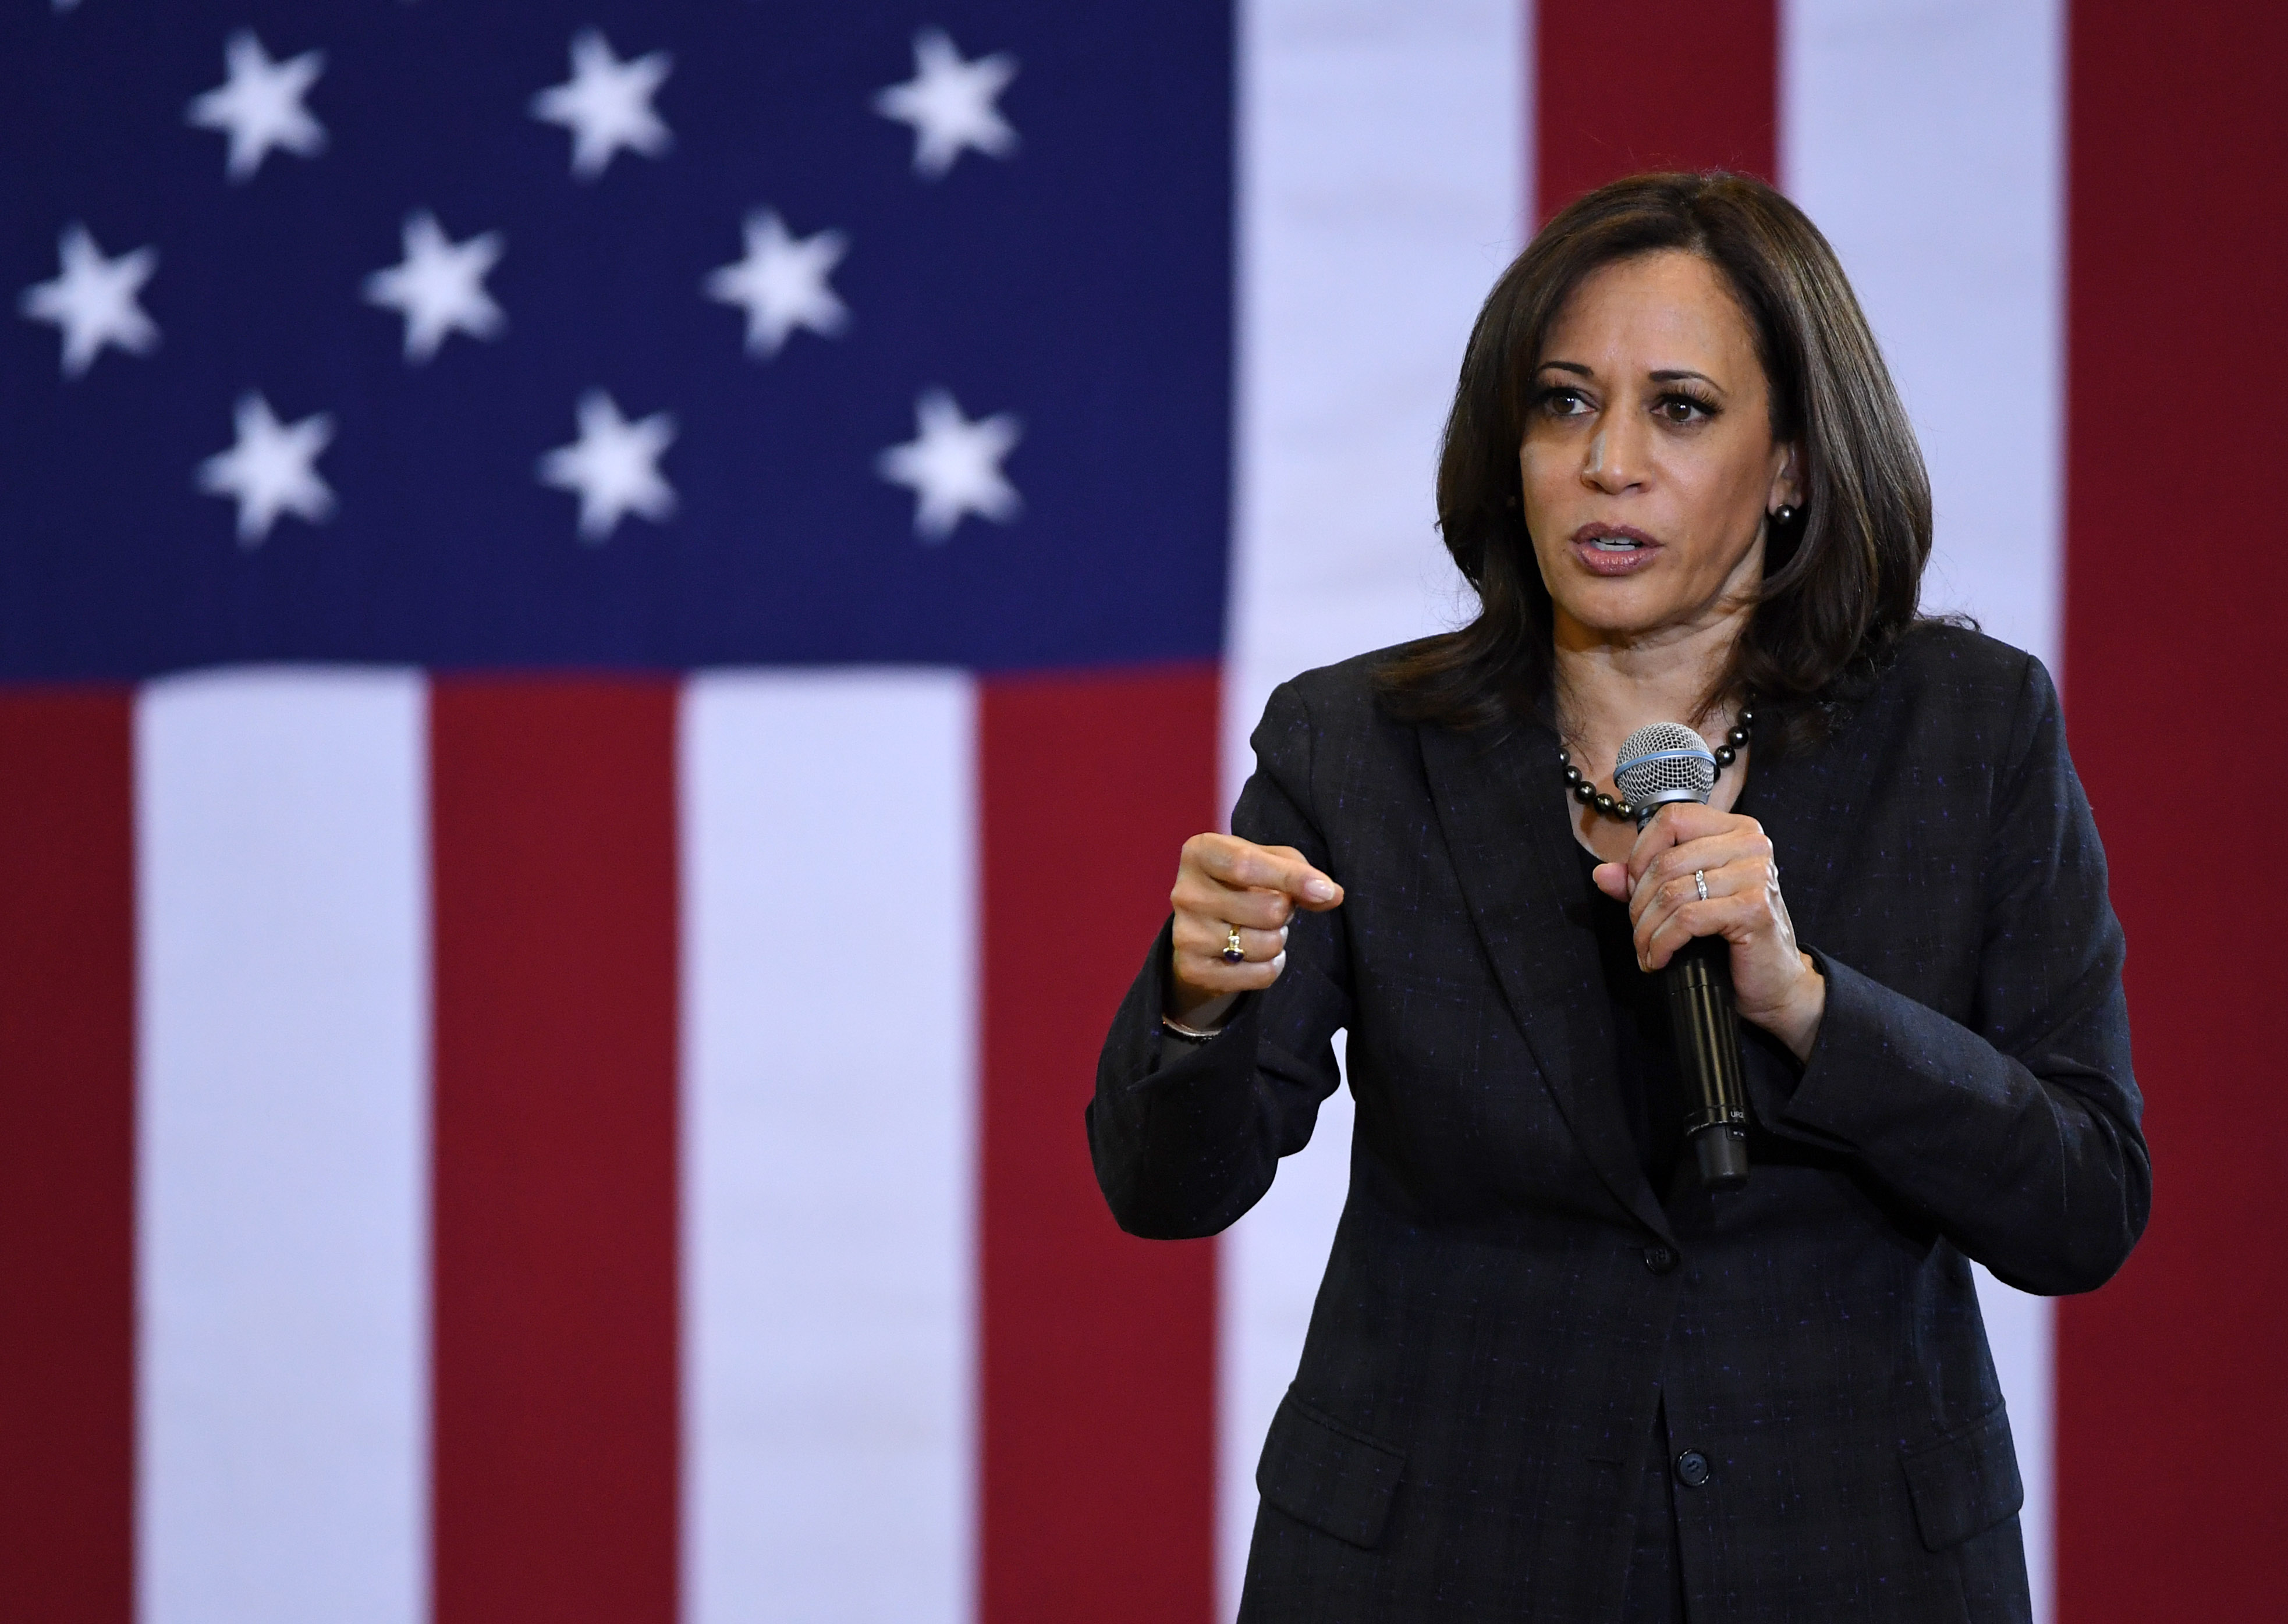 Harris, in a black suit, speaks in front of a giant American flag.